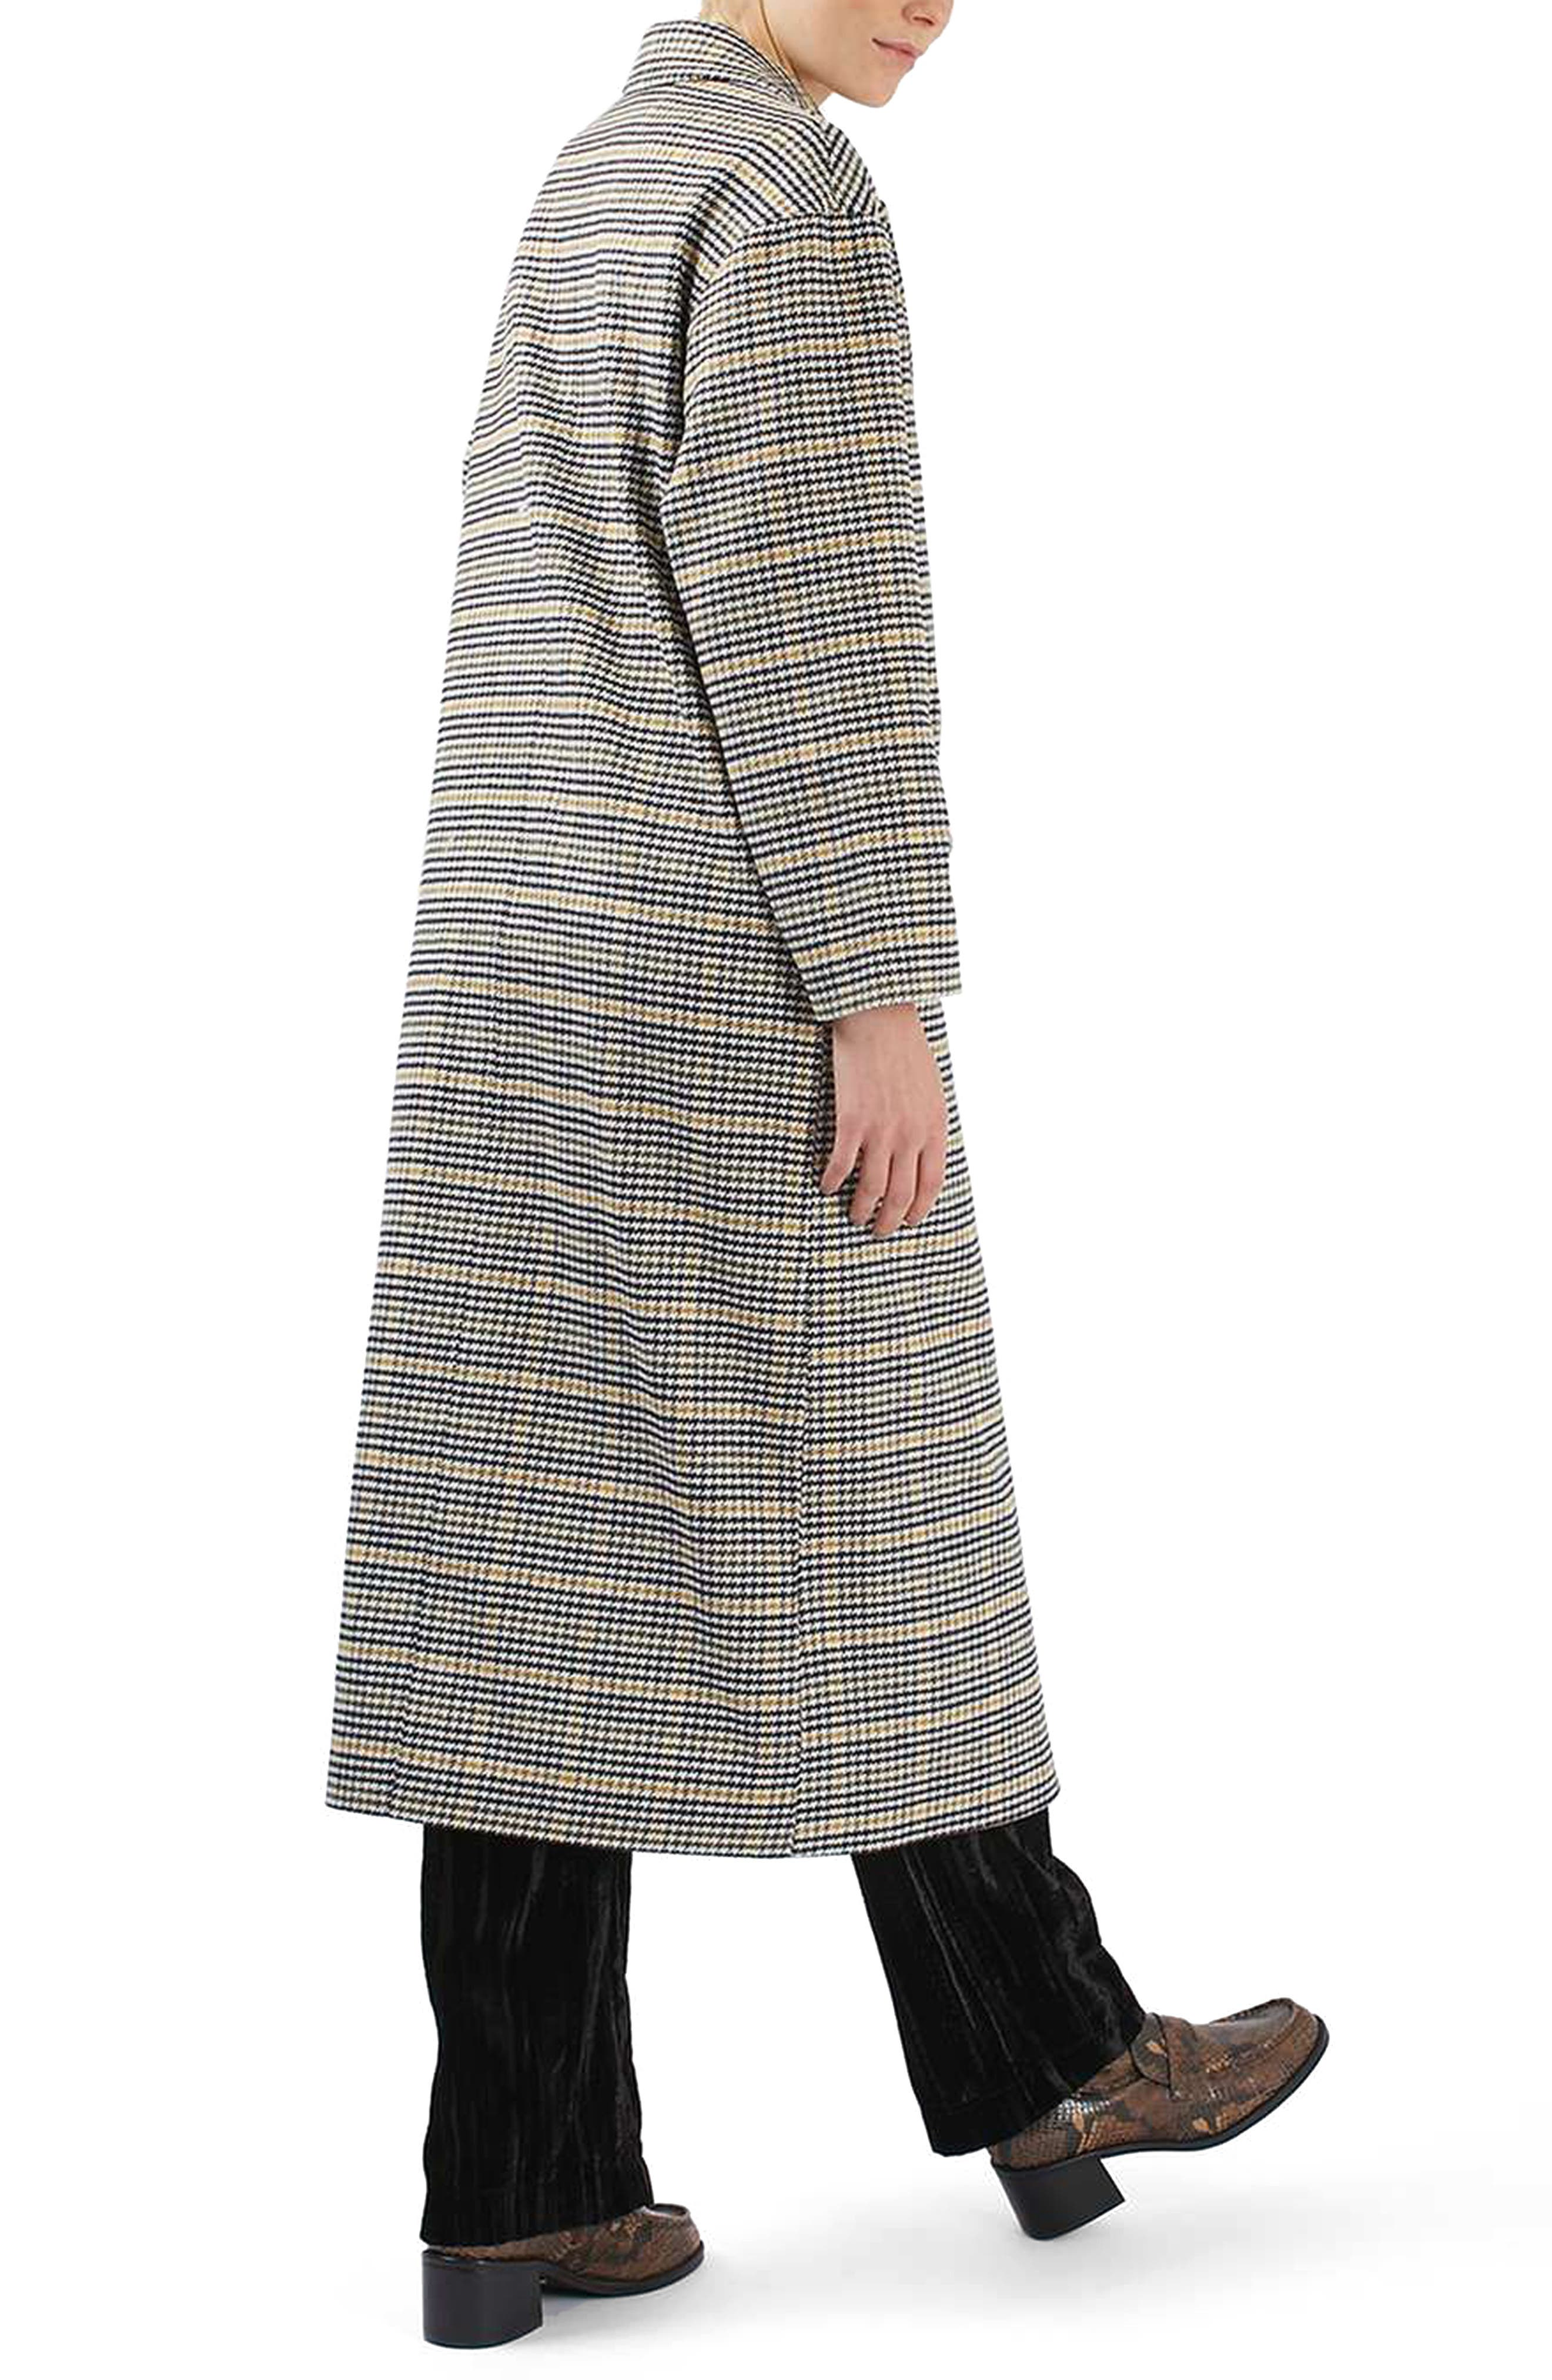 TOPSHOP,                             Heritage Check Coat,                             Alternate thumbnail 2, color,                             001